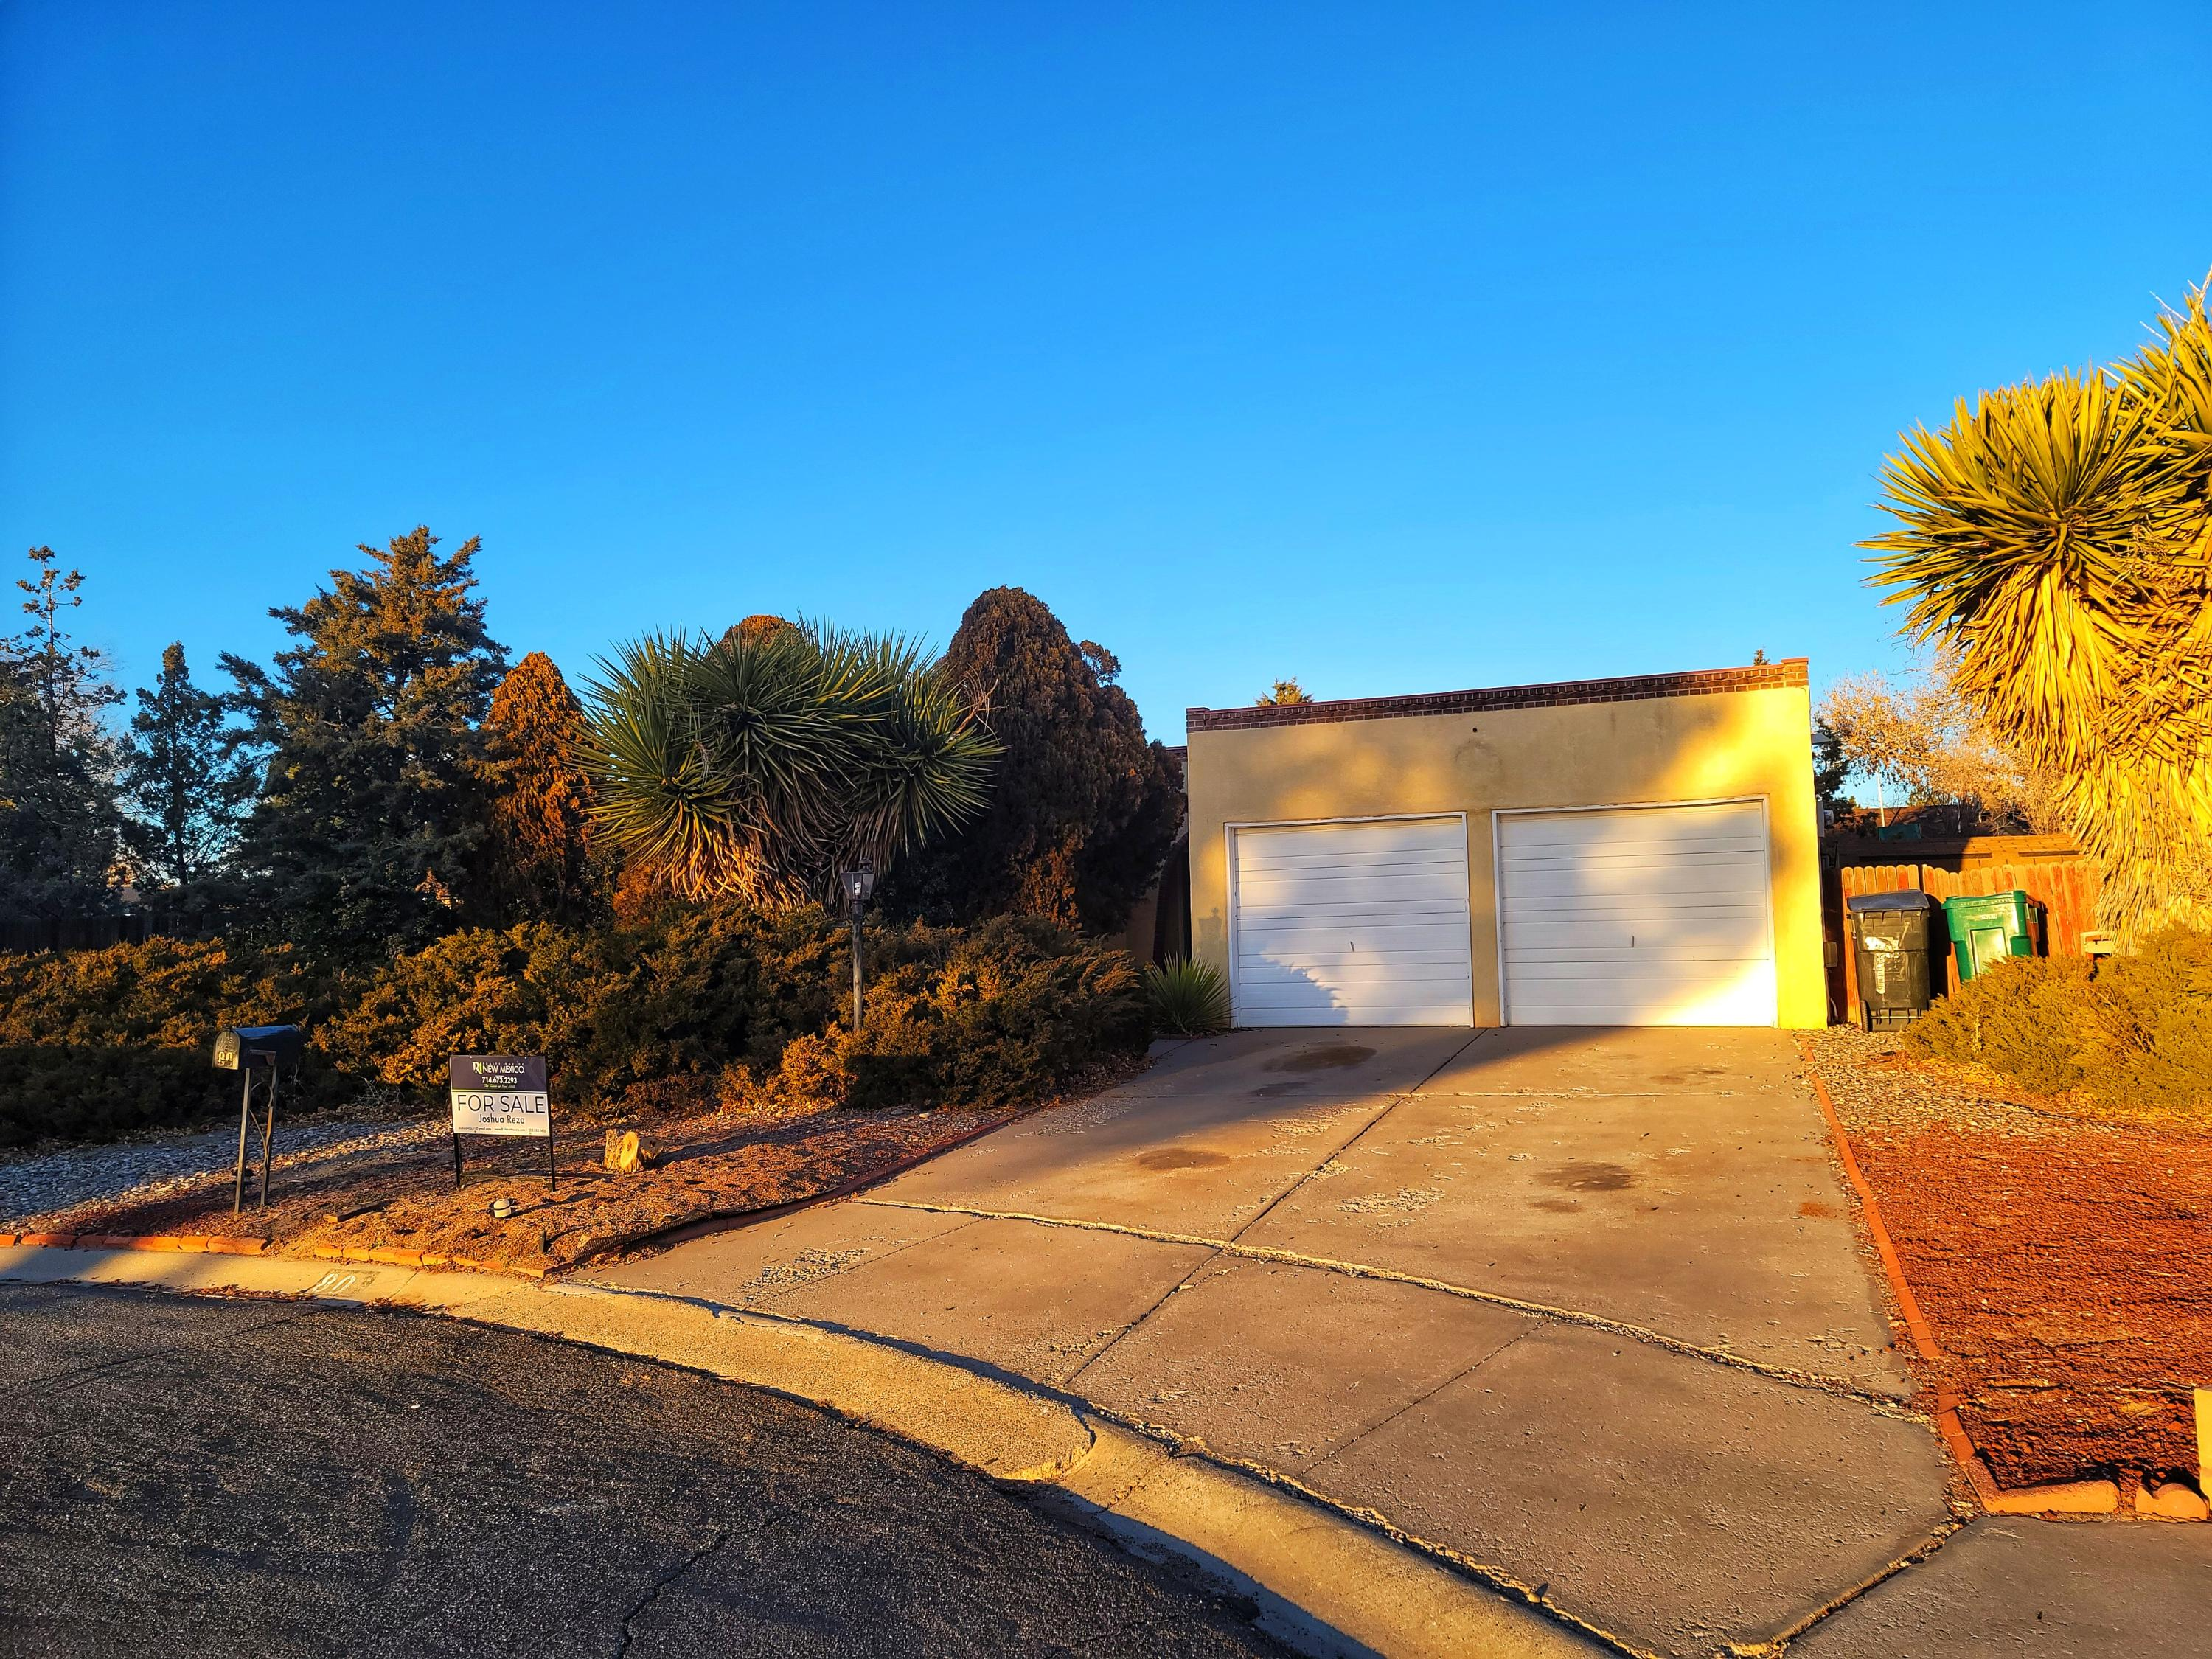 Selling AS-IS.....Great Single Family Home located in Rio Rancho. 3 Bedrooms, 2 Bath, 2 Car Garage . Close to restaurants and shopping centers. Has a pool in the Back yard that needs work.  Buyer to pay for their own Inspections for Buyers knowledge only!